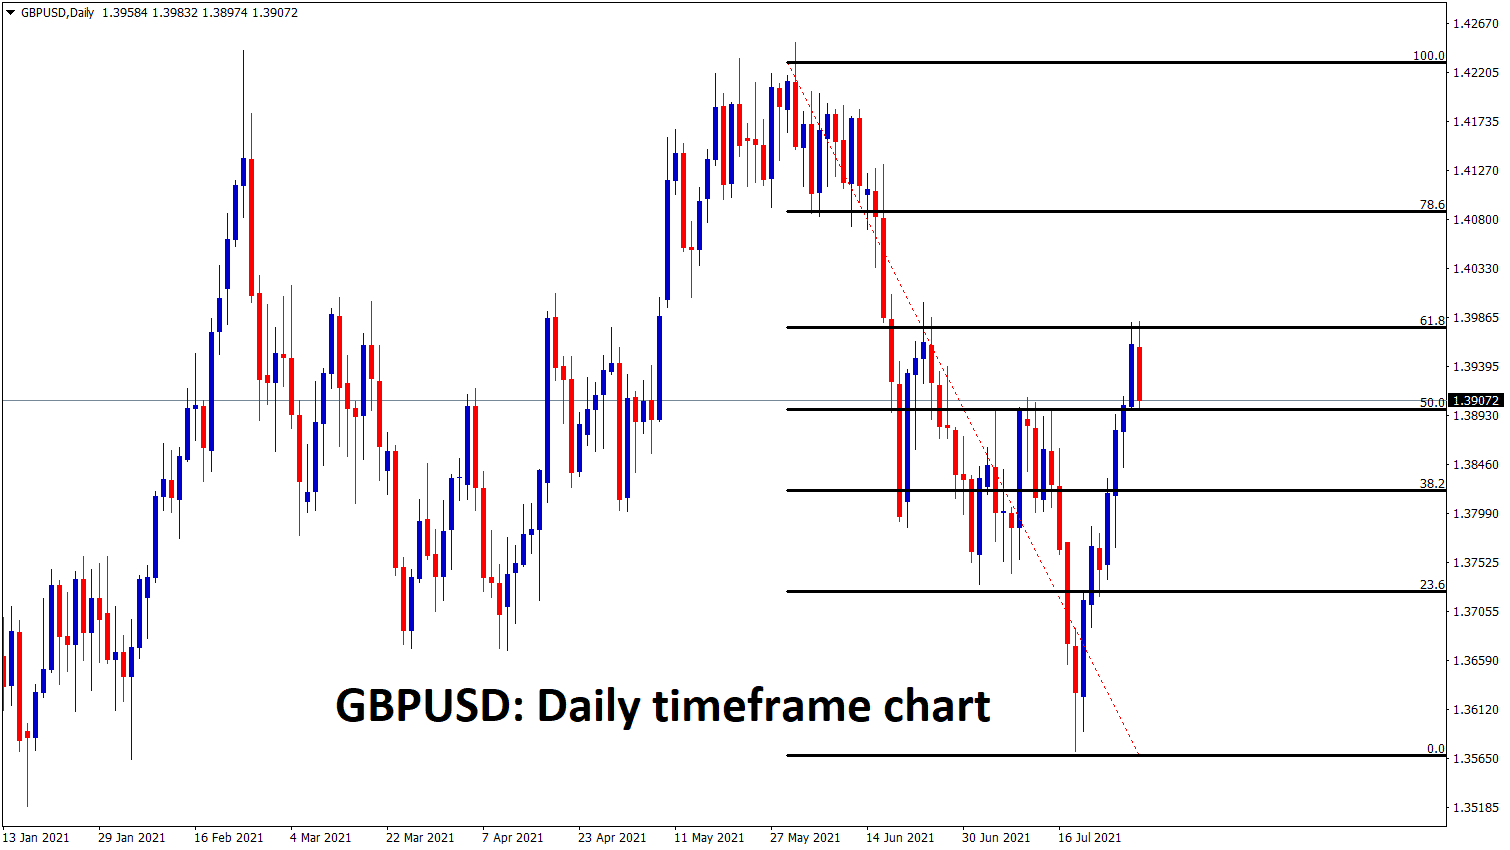 GBPUSD has made a correction from 61 to 50 in the daily timeframe